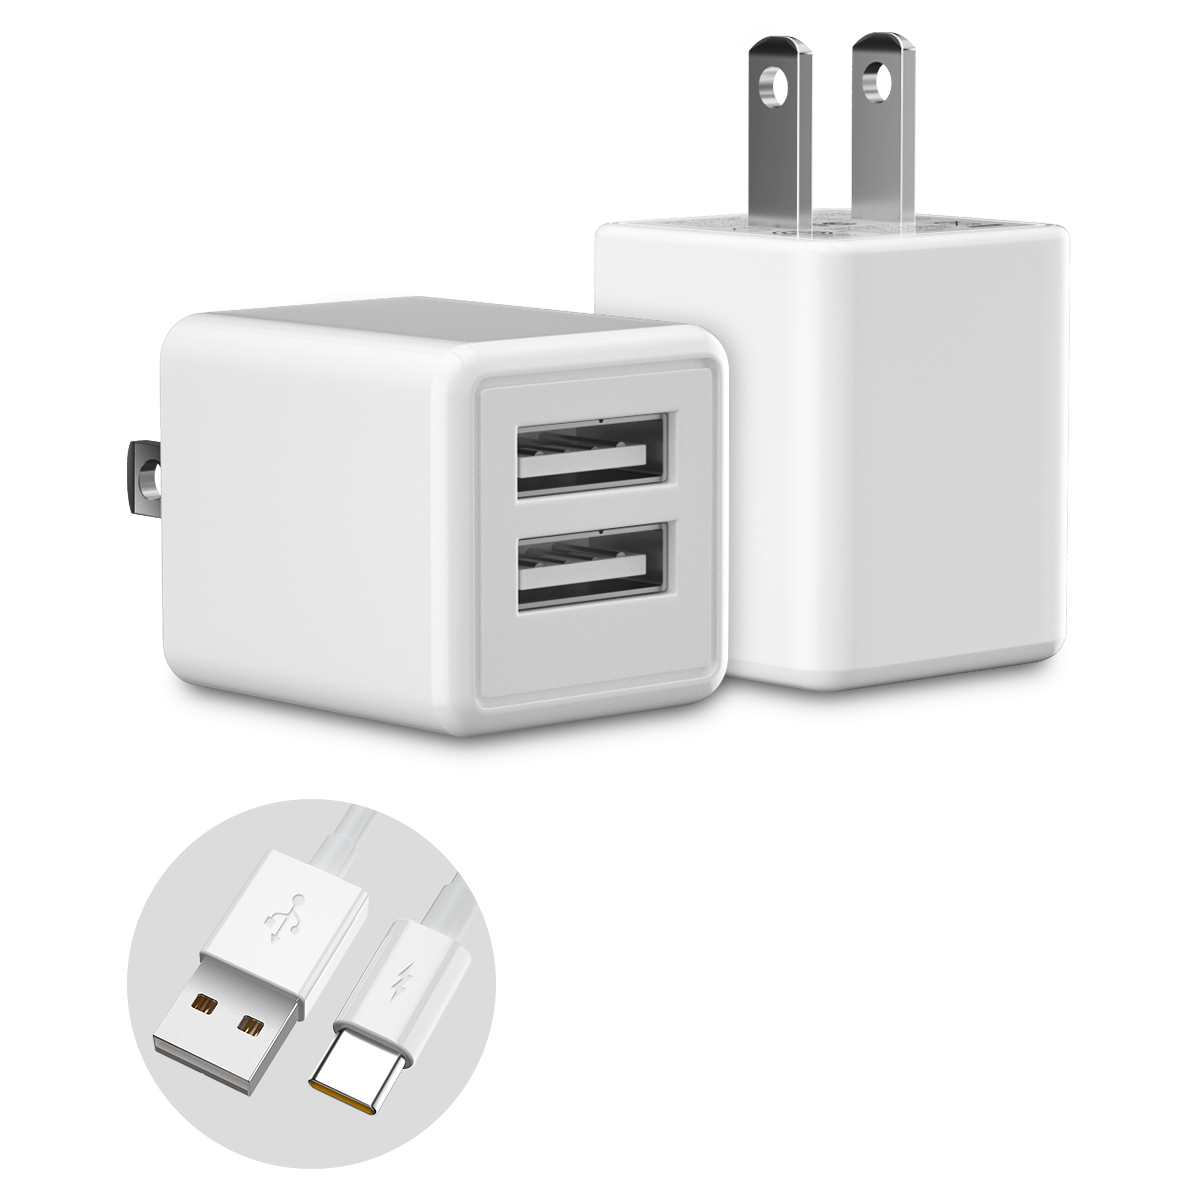 40%OFF -Dual USB charger